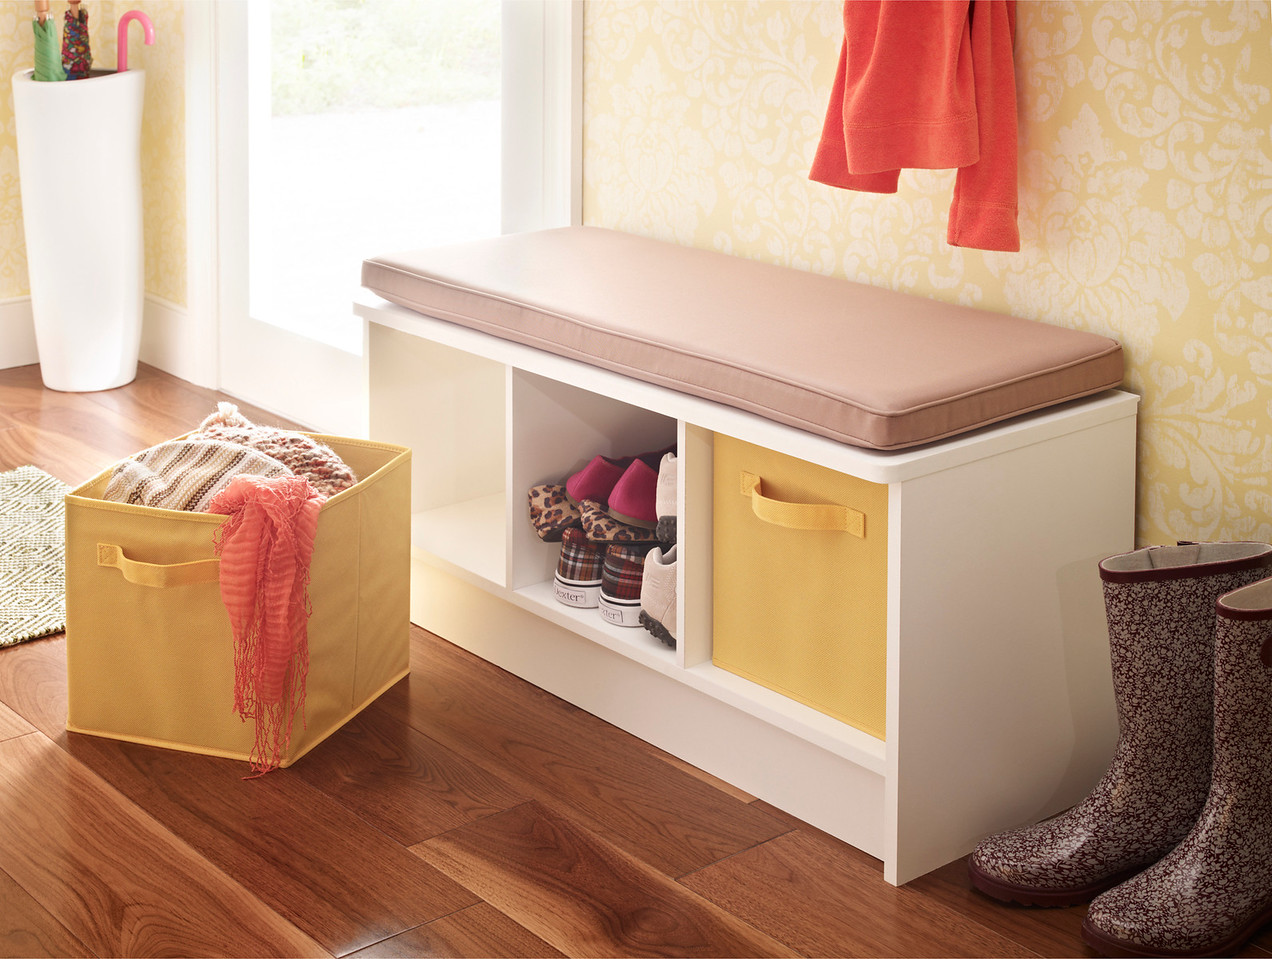 Entryway featuring a ClosetMaid Cubeicals 3-Cube Storage Bench in White with Fabric Drawers in Yellow